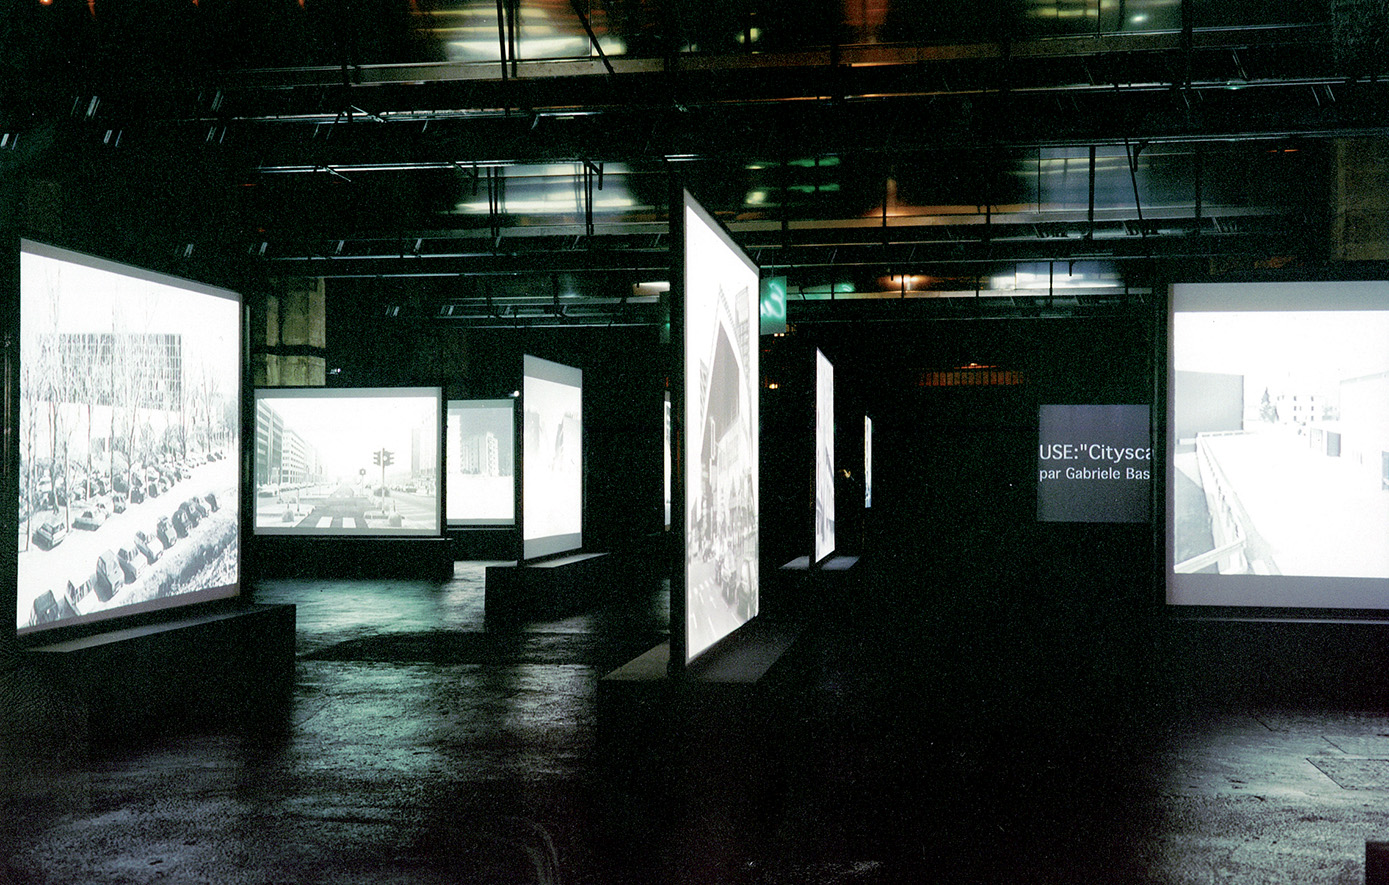 Stefano Boeri, USE - Uncertain States of Europe, Bordeaux, 2000. Installazione per la mostra Mutations. Multiplicity, Milano.